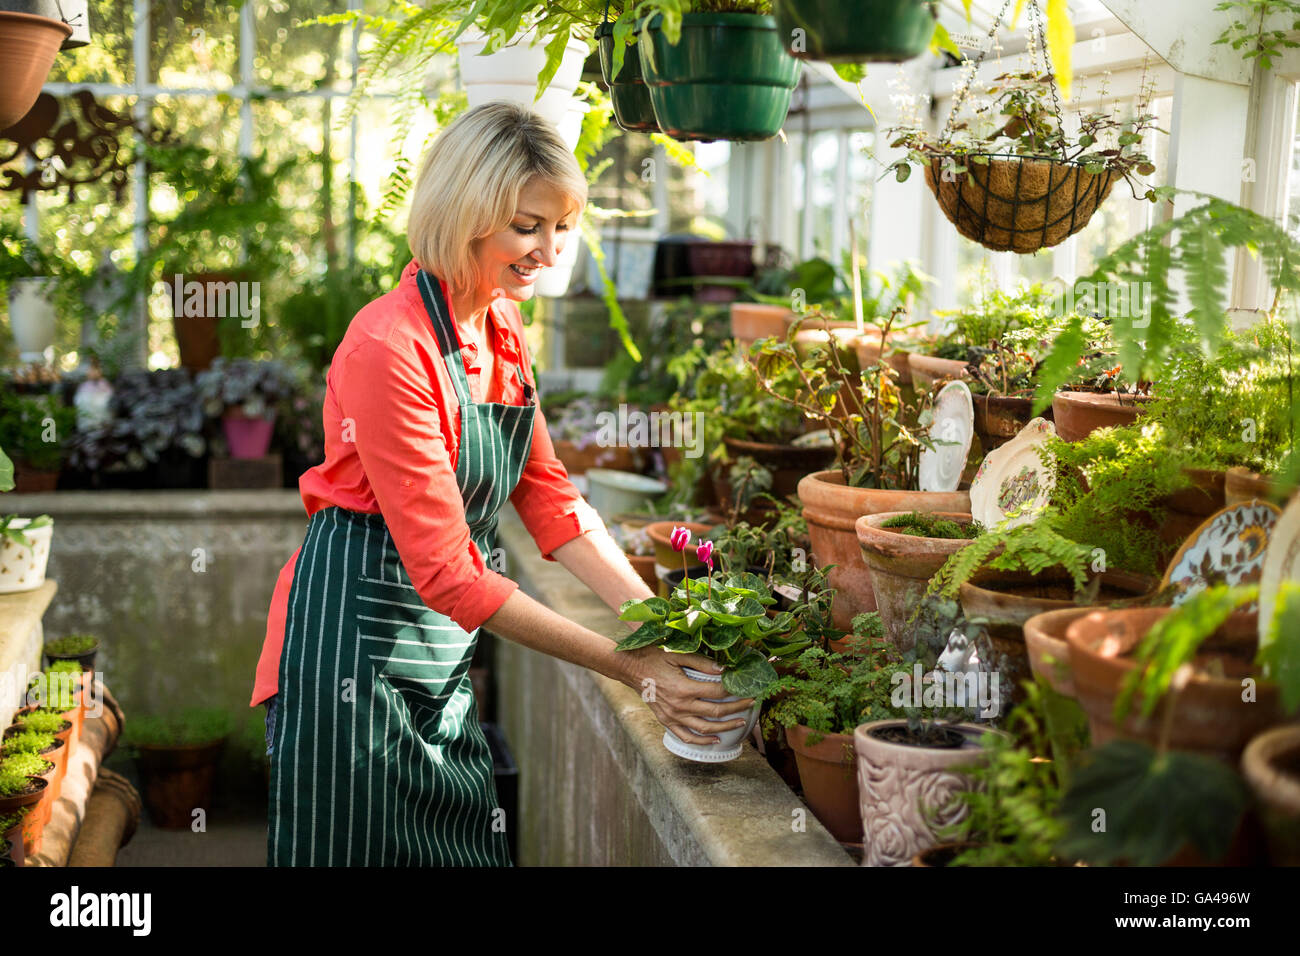 Mature woman holding potted plant at greenhouse - Stock Image